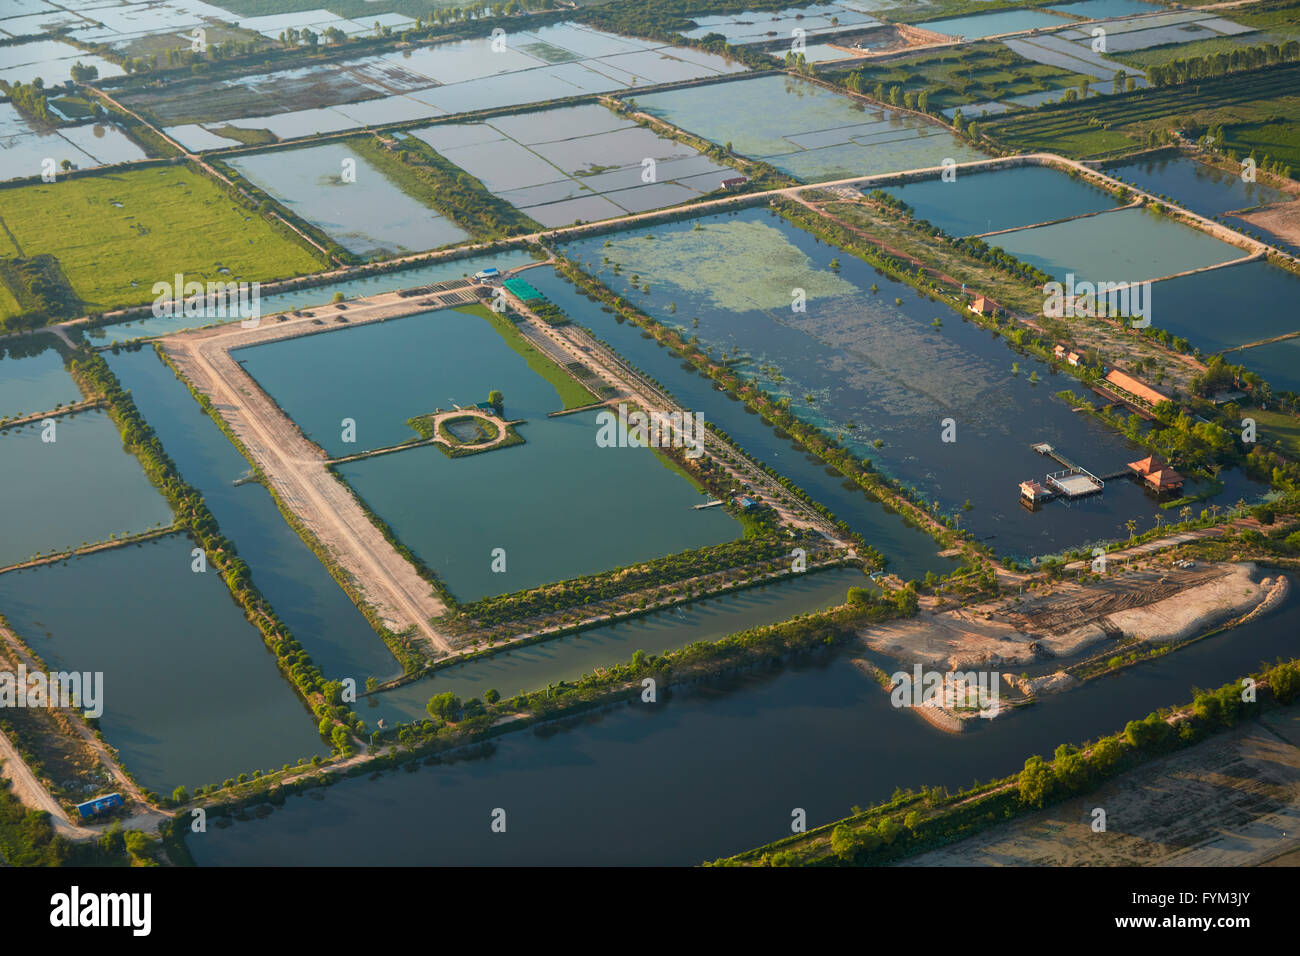 Rice paddies and ponds in new development near Siem Reap, Cambodia - aerial - Stock Image